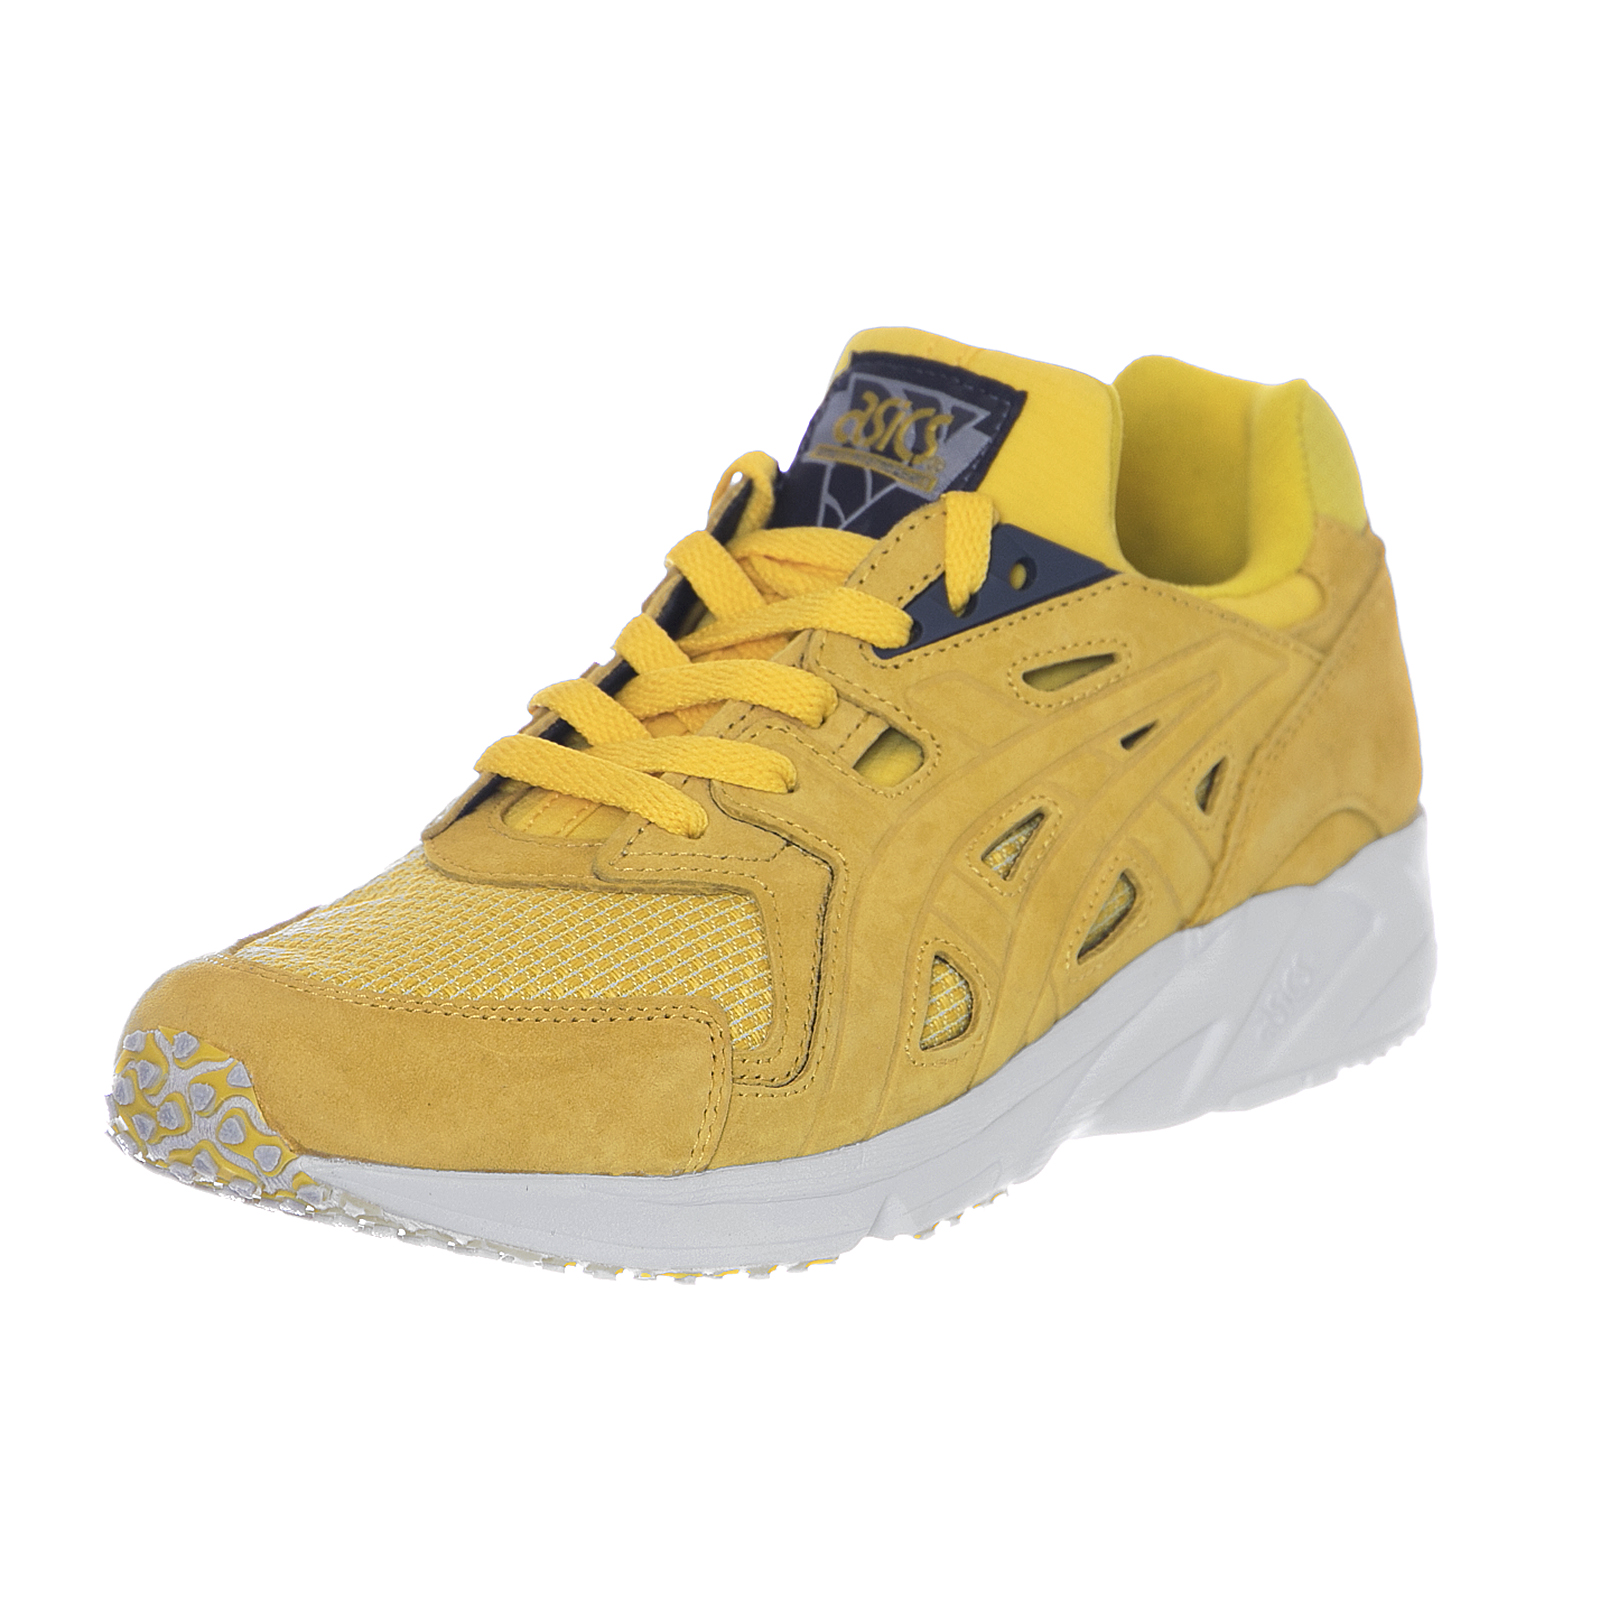 Asics Sneakers Gel-Ds Trainer Og Tai-Chi Yellow/Tai-Chi yellow yellow